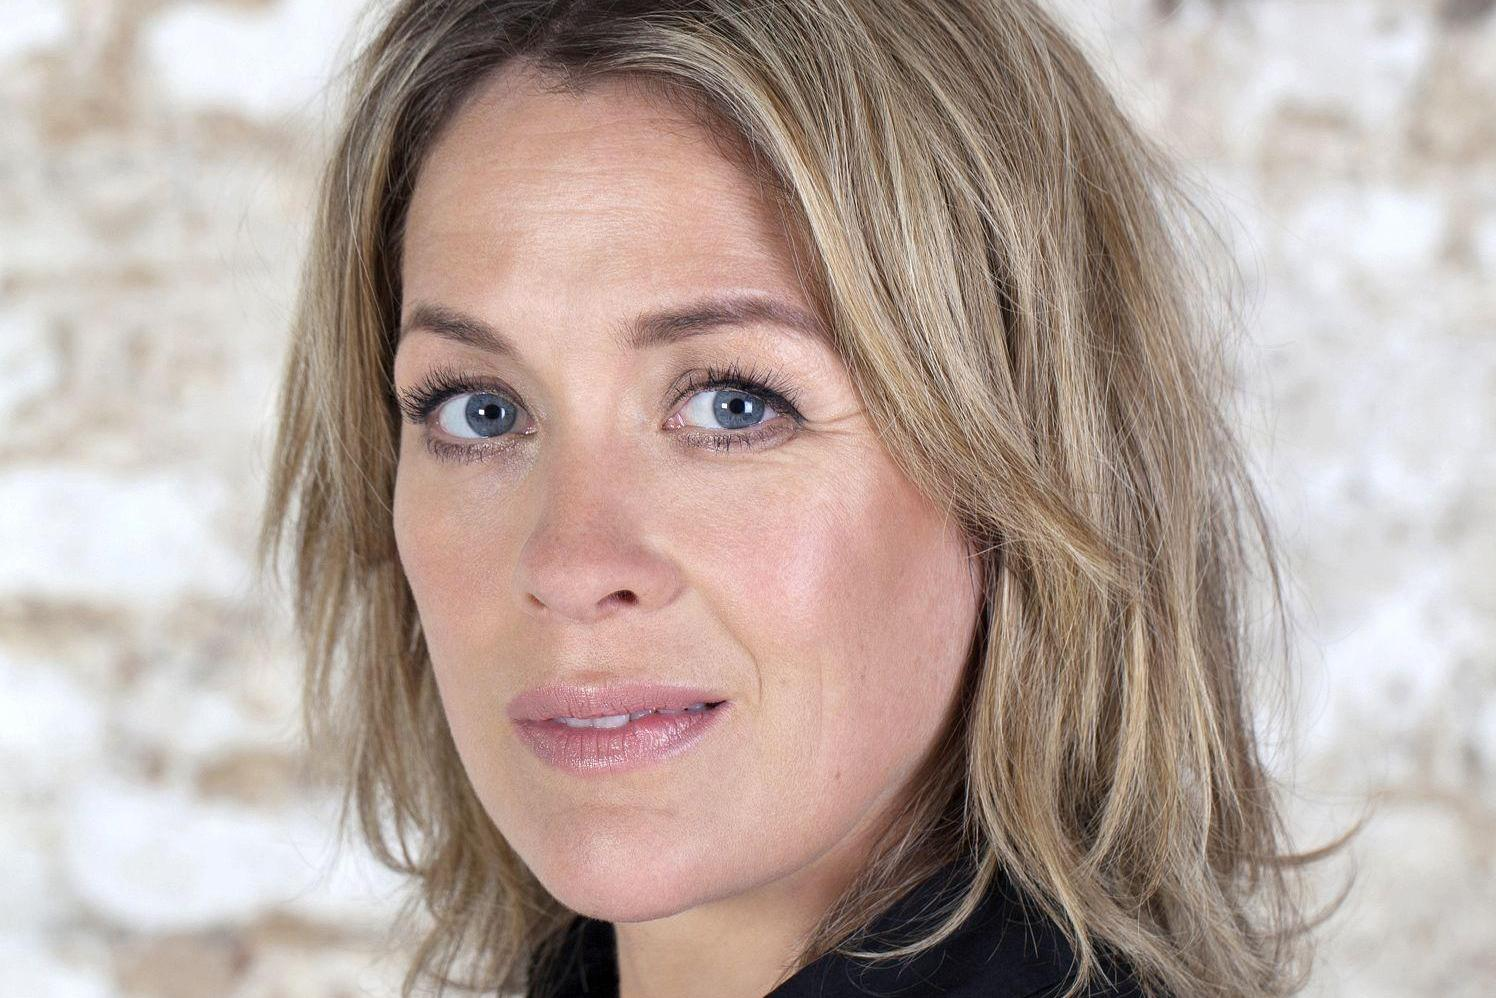 sarah beeny dating website ireland The graham norton show  such as sarah beeny's dating website,  bbc two northern ireland did the same, and during series three,.